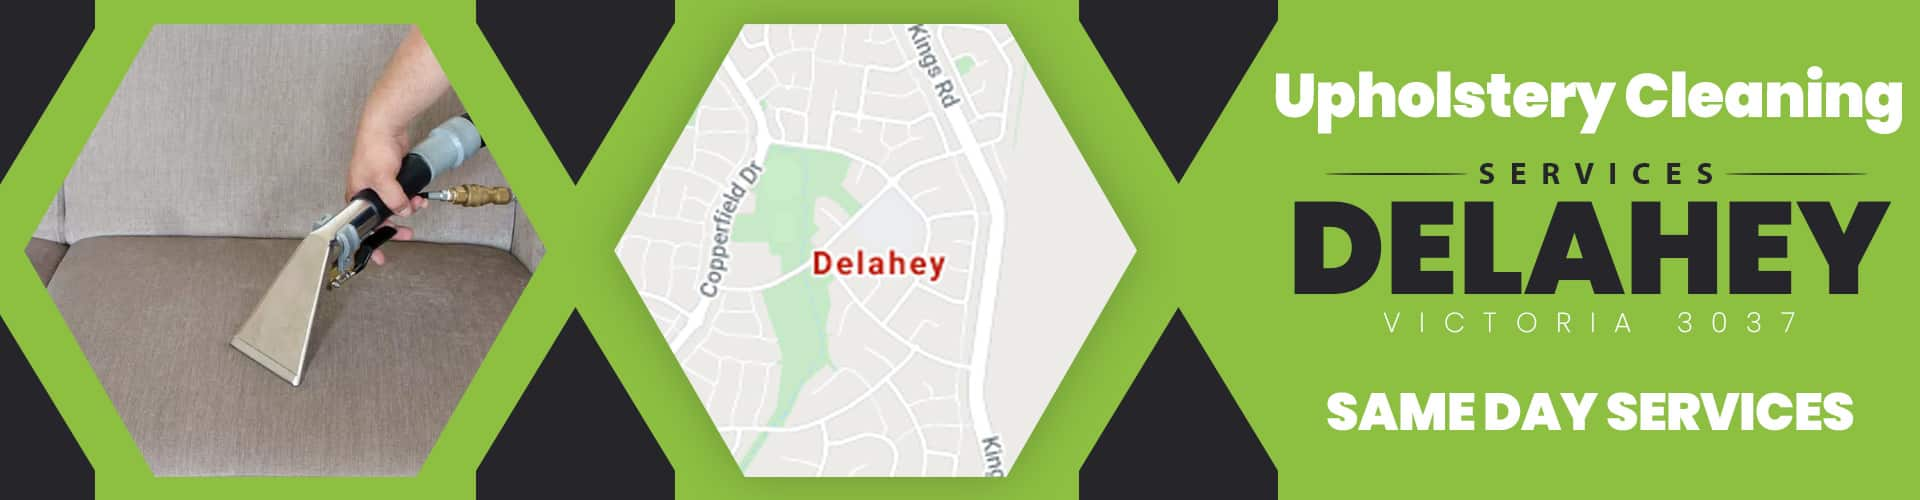 Upholstery Cleaning Delahey